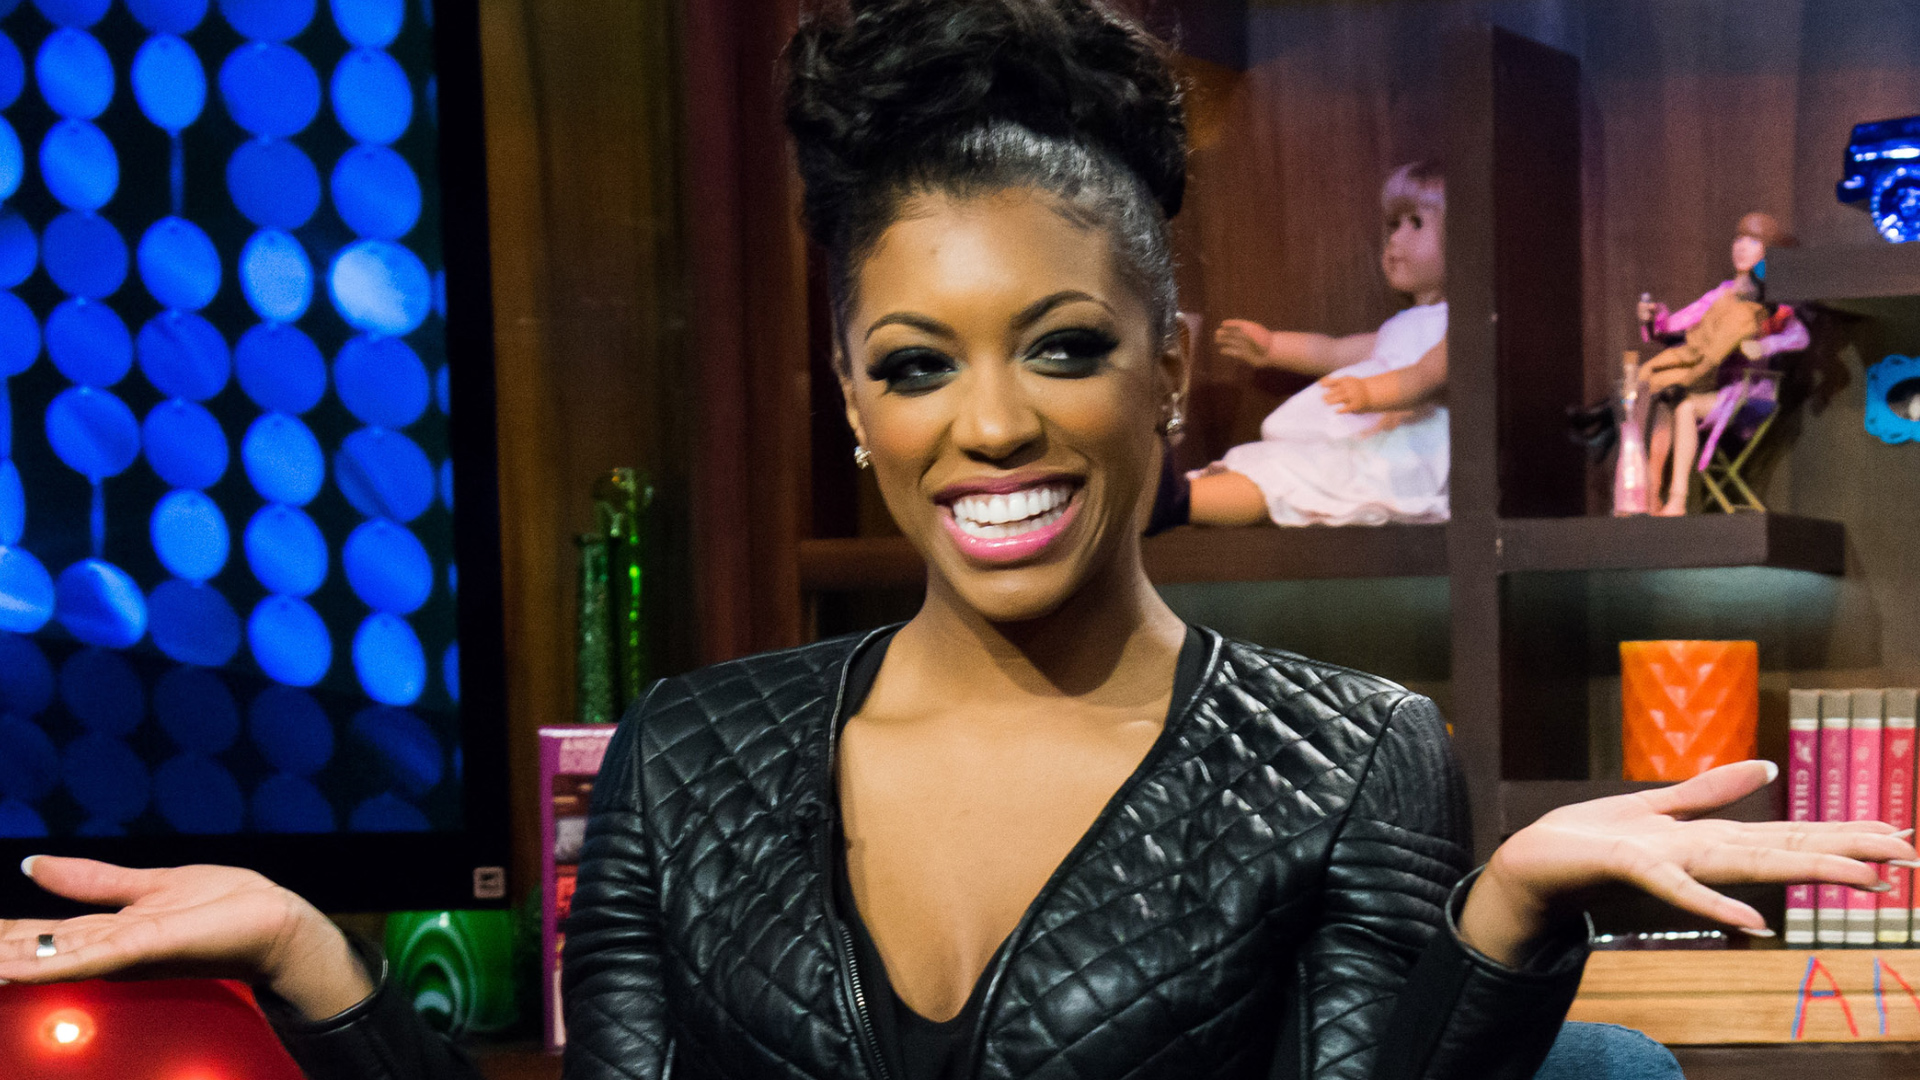 porsha-williams-shares-pics-videos-from-her-date-night-with-dennis-mckinley-and-fans-thank-her-for-being-transparent-about-how-a-postpartum-body-looks-like